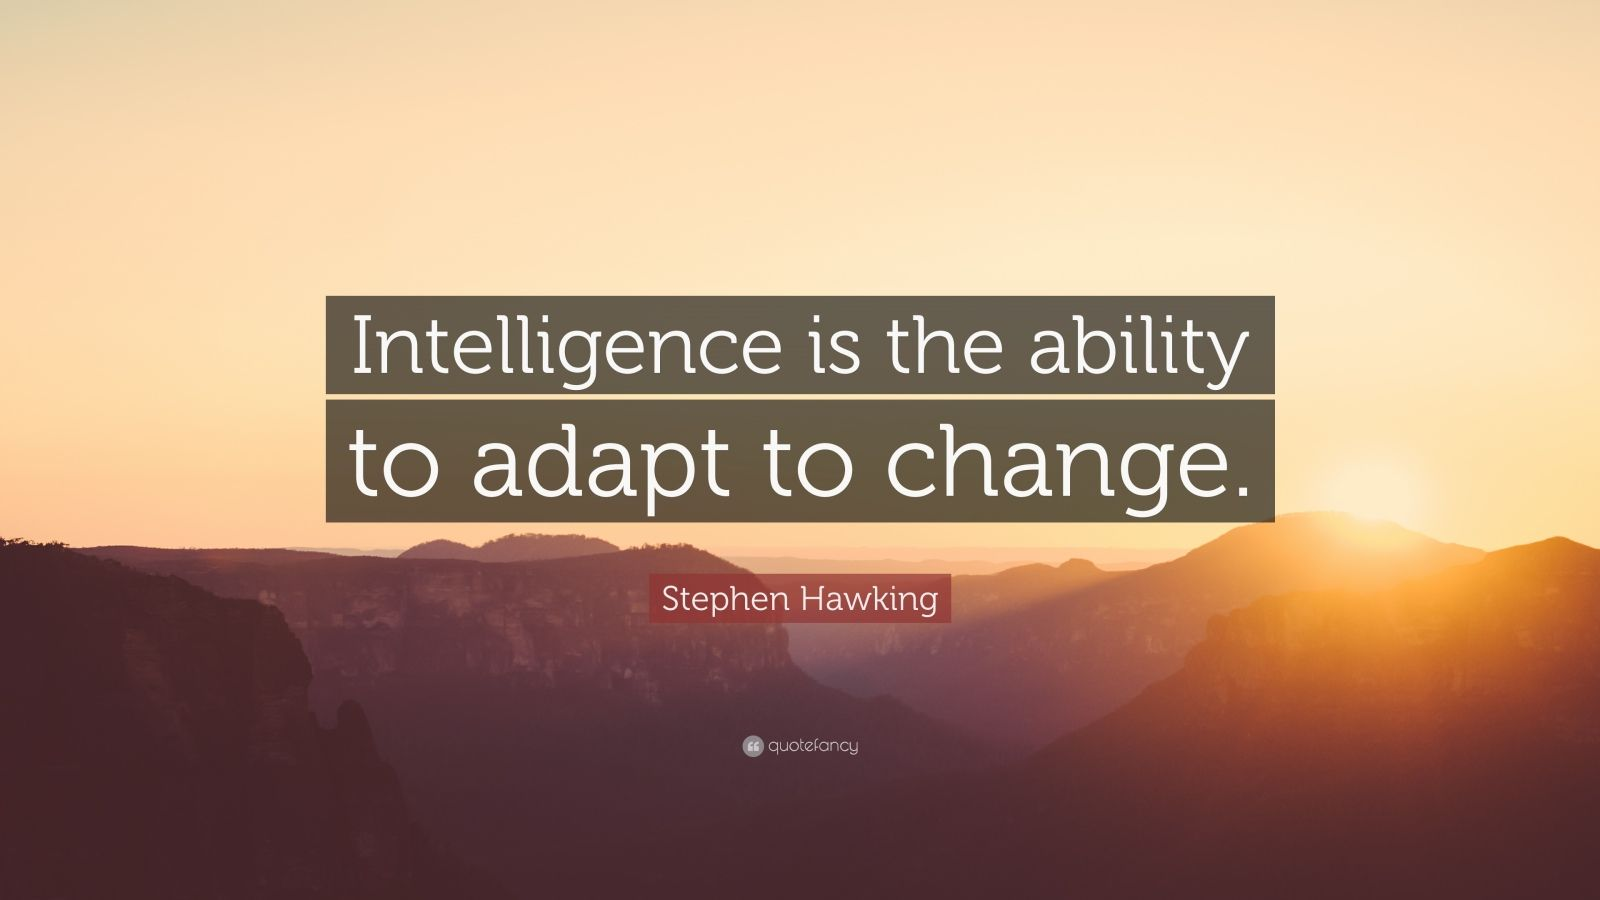 Stephen Hawking Intelligence Quotes